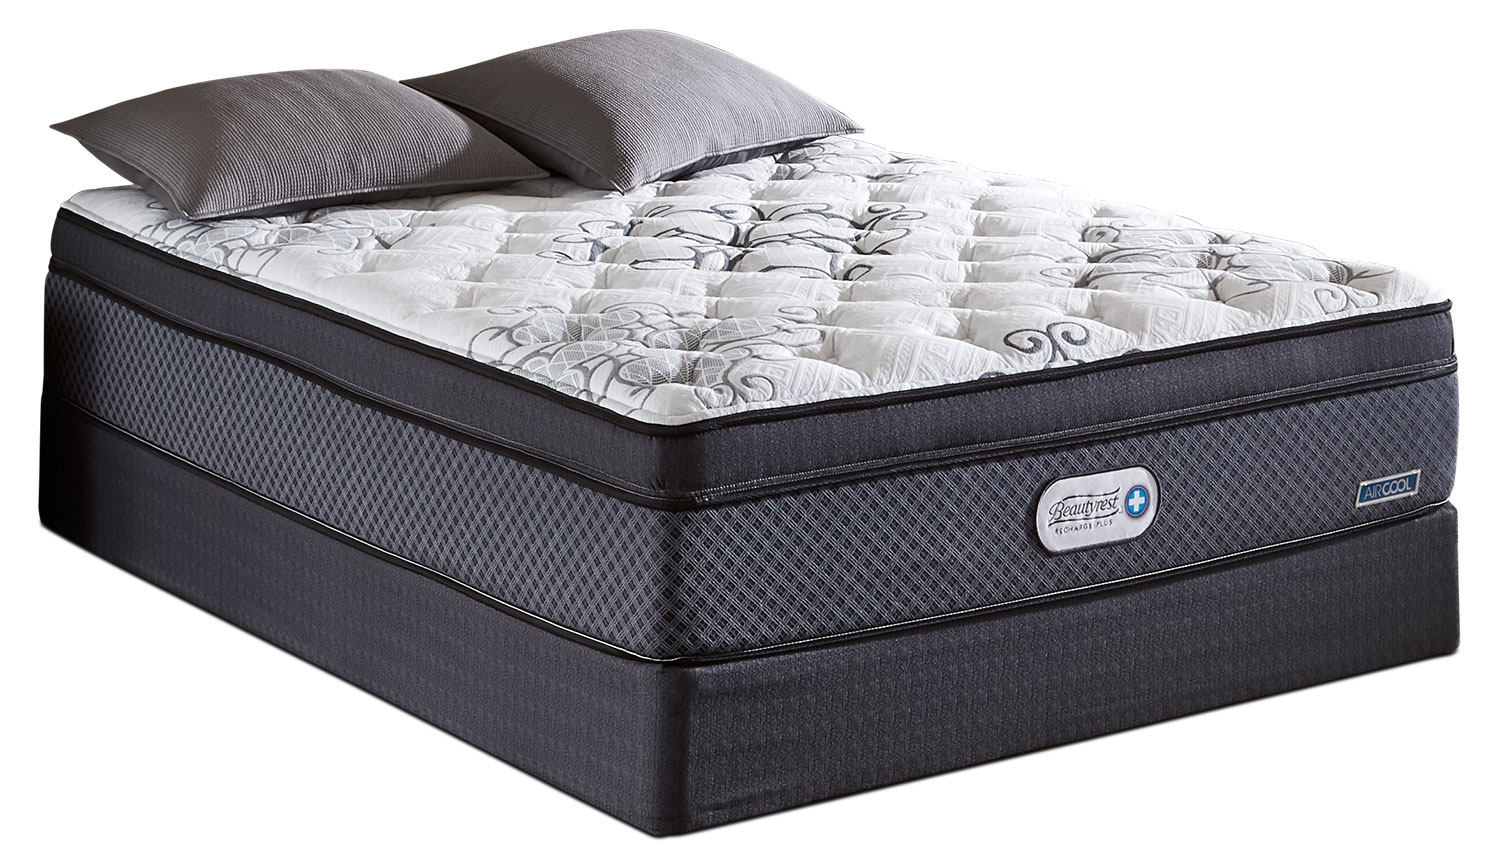 Mattresses and Bedding - Beautyrest Recharge Plus Covington Euro-Top Luxury Firm King Mattress Set